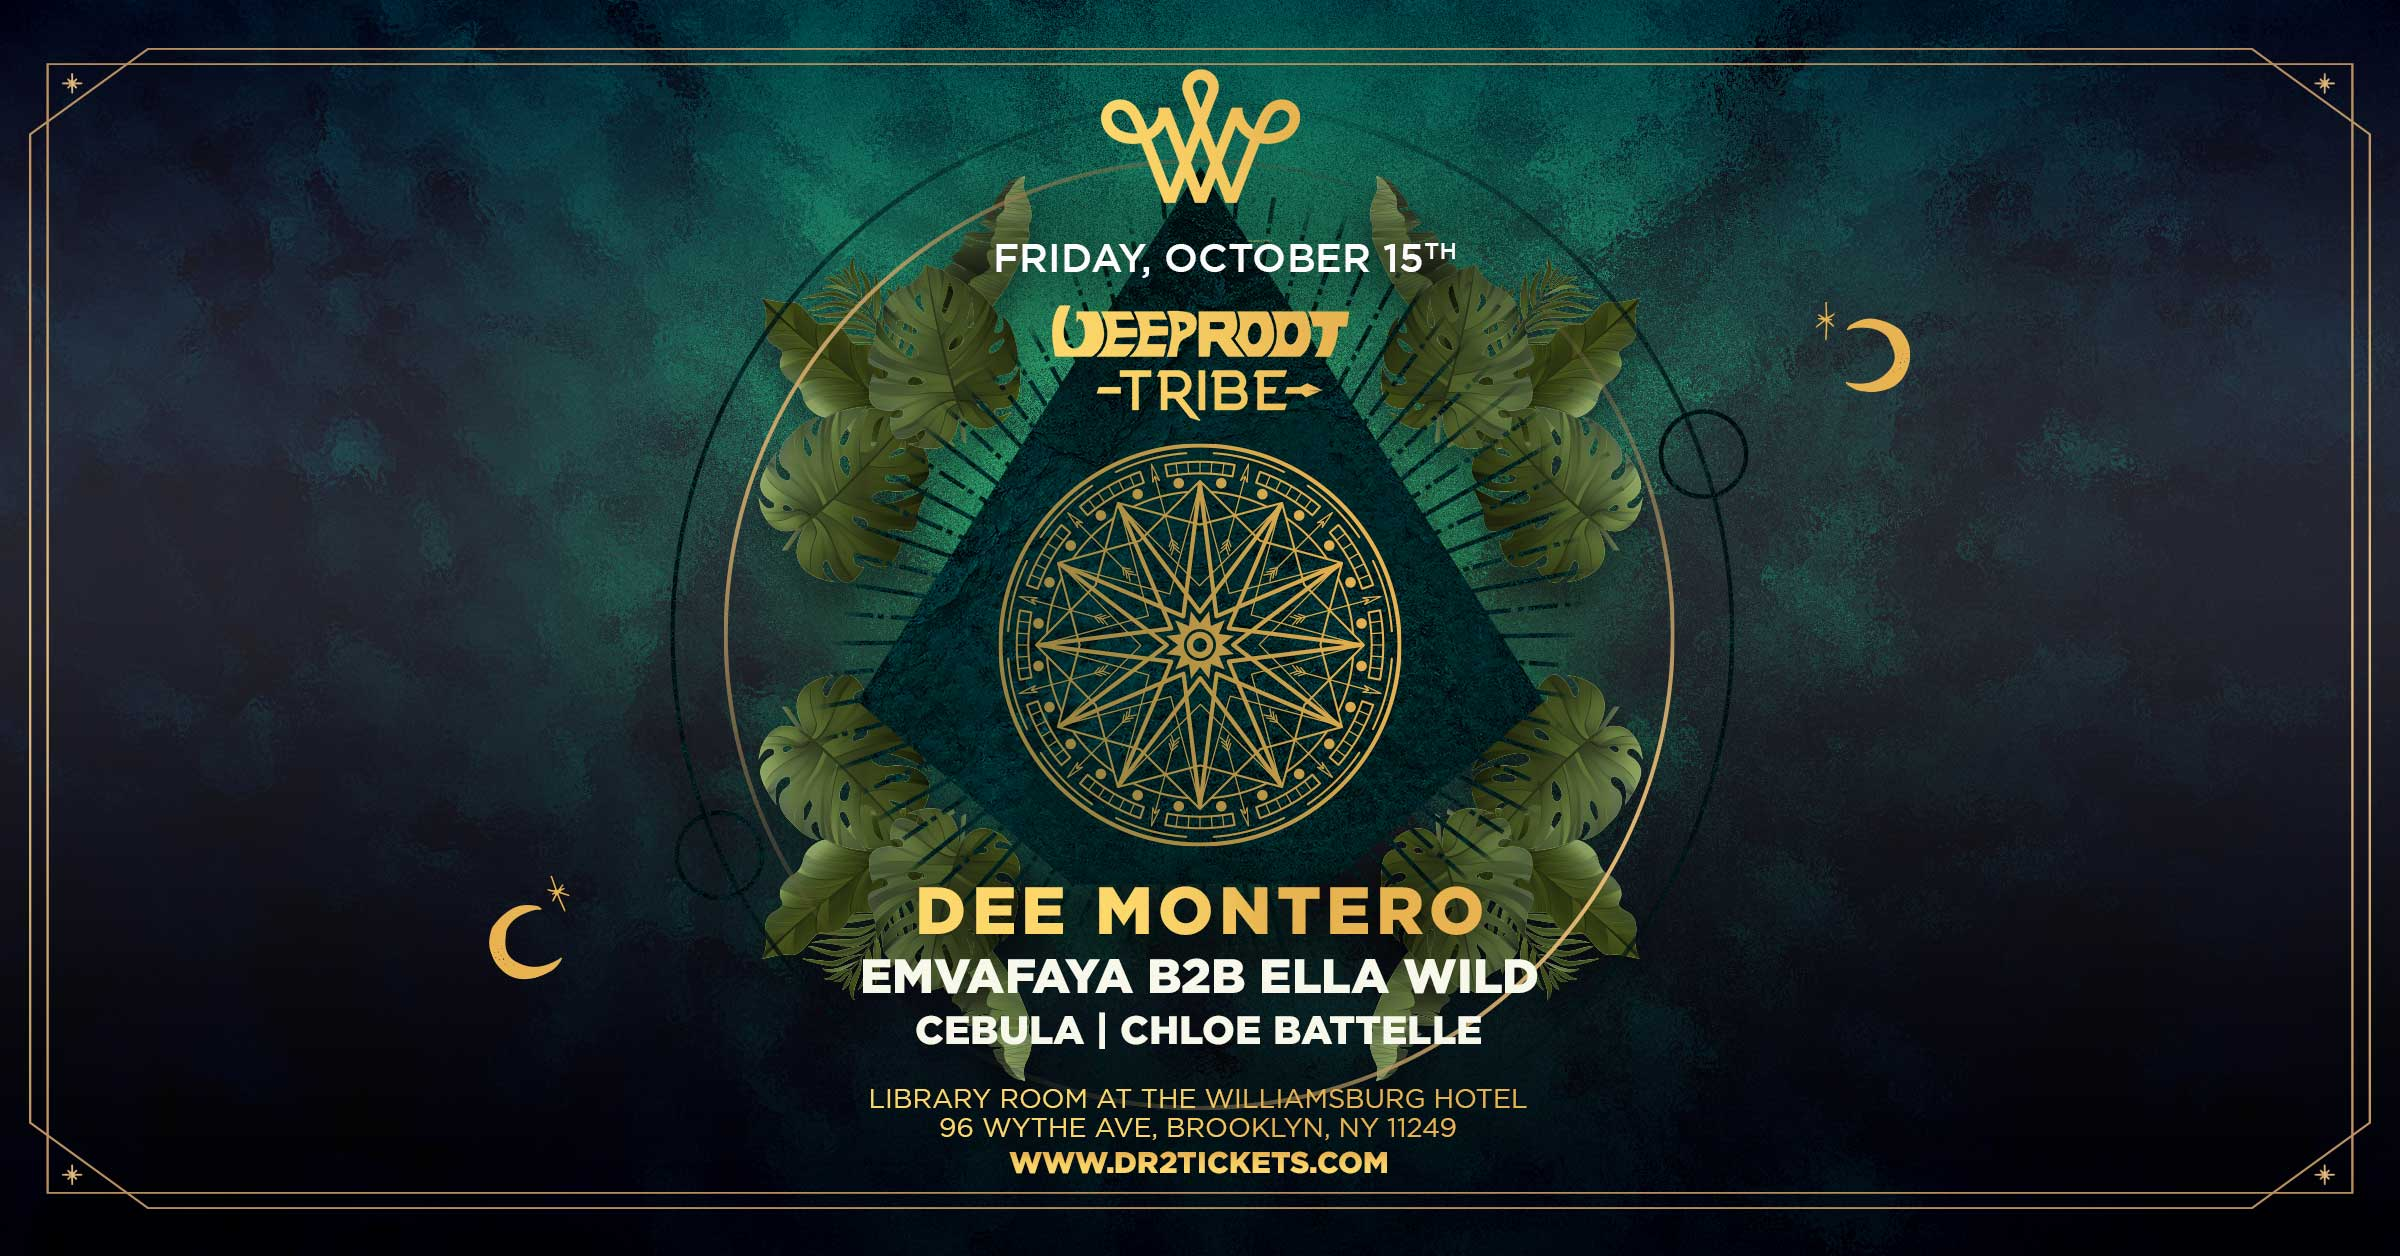 Deep Root Tribe Presents Dee Montero in The Williamsburg Hotel's Library Room [10/15]